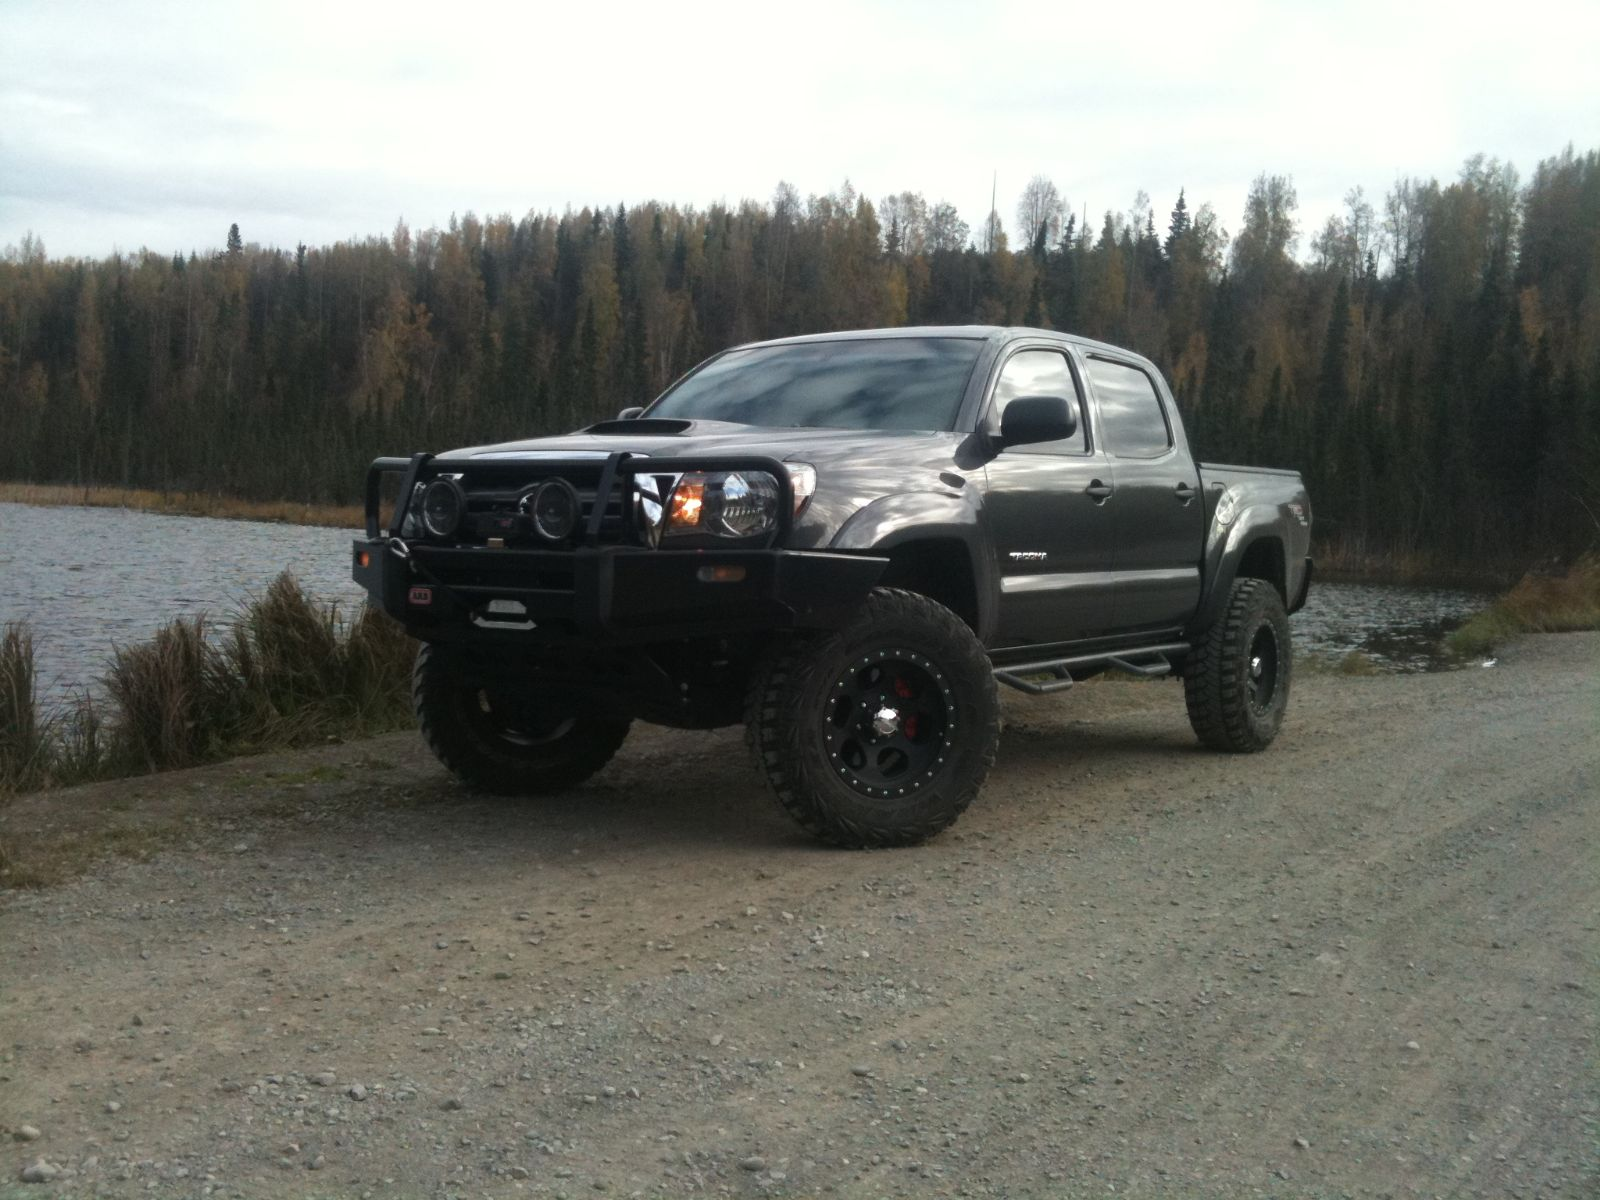 toyota tacoma trd off road photos reviews news specs buy car. Black Bedroom Furniture Sets. Home Design Ideas